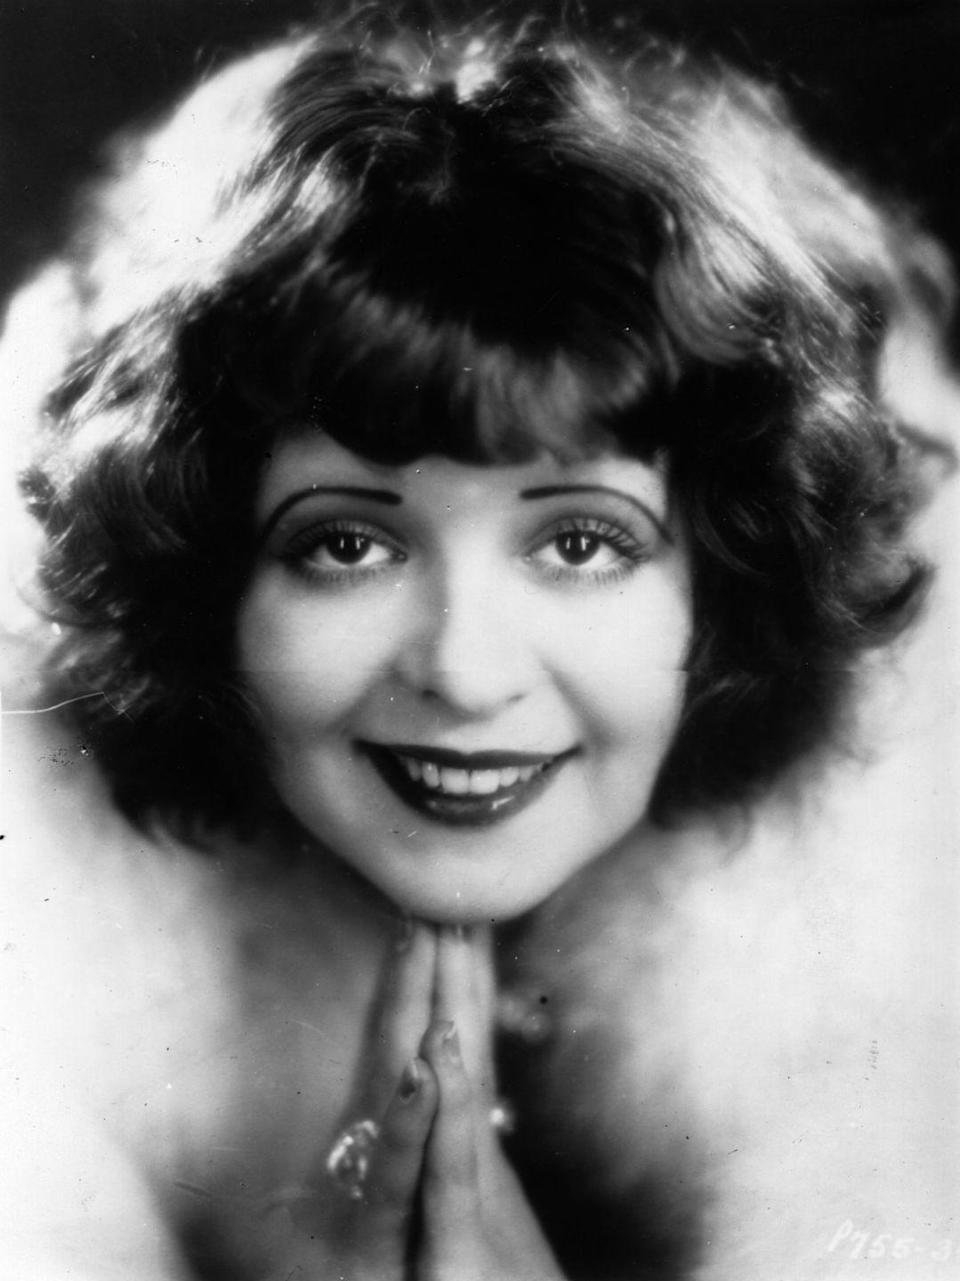 <p>Sure, films were in black and white, but when the public heard that movie star Clara Bow dyed her hair red, henna sales went through the roof.</p>